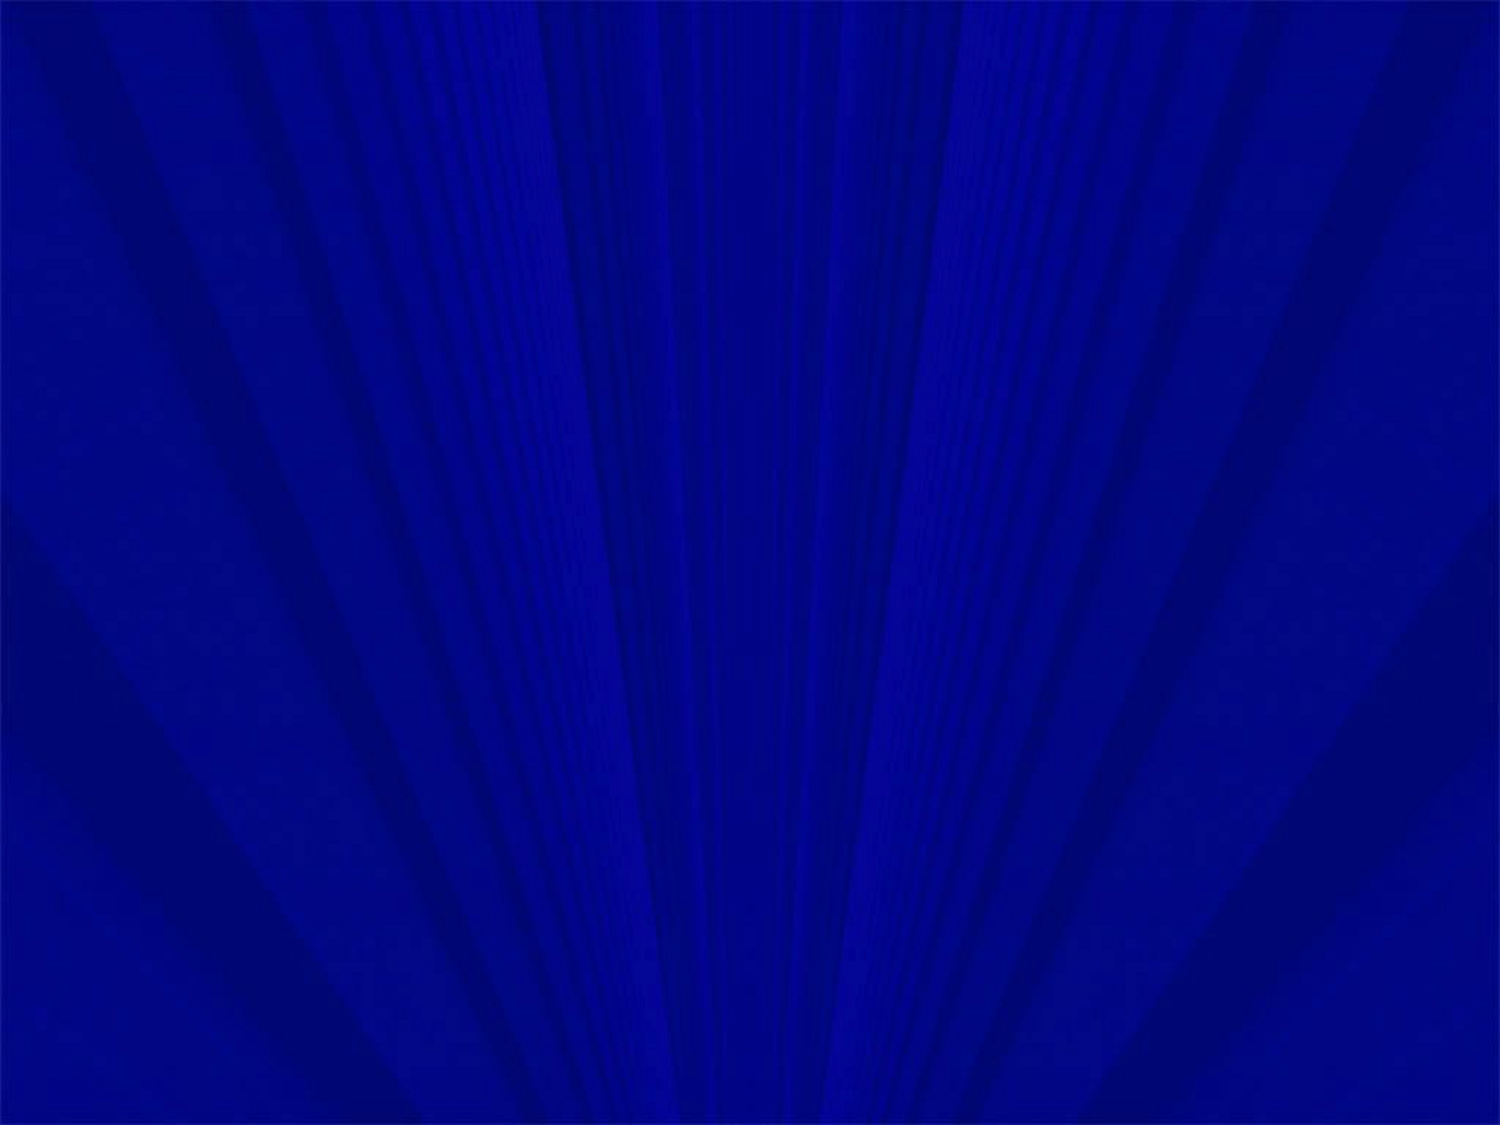 Royal Blue Backgrounds - Wallpaper Cave